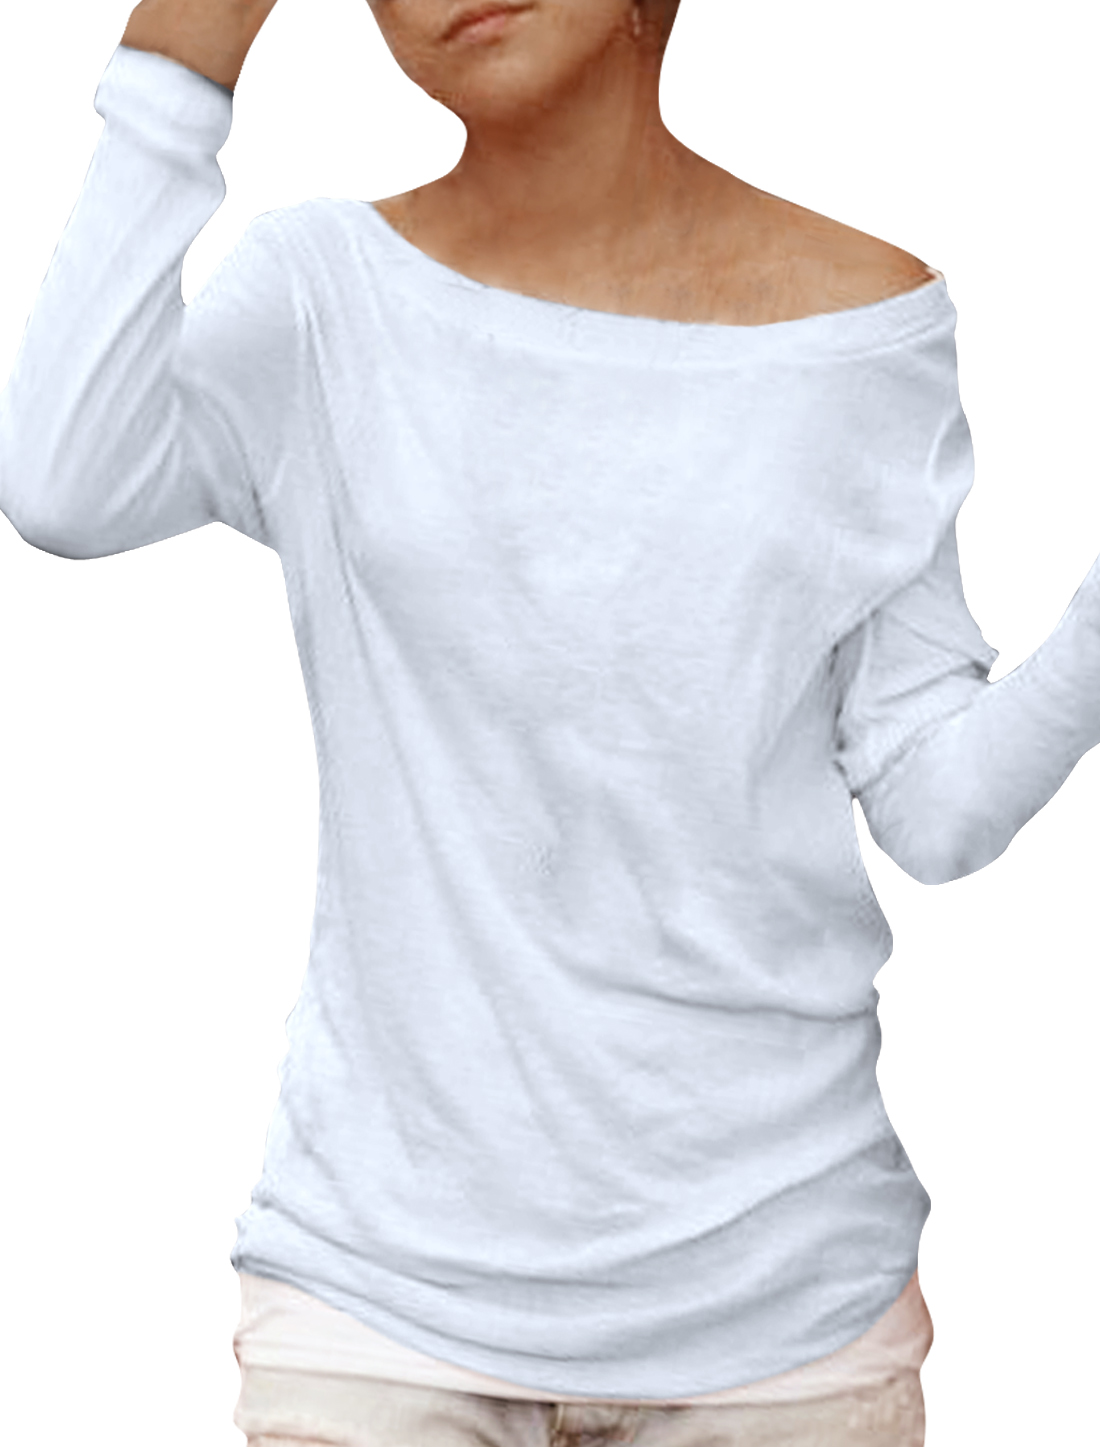 Solid White Long Sleeves Shirt L for Ladies